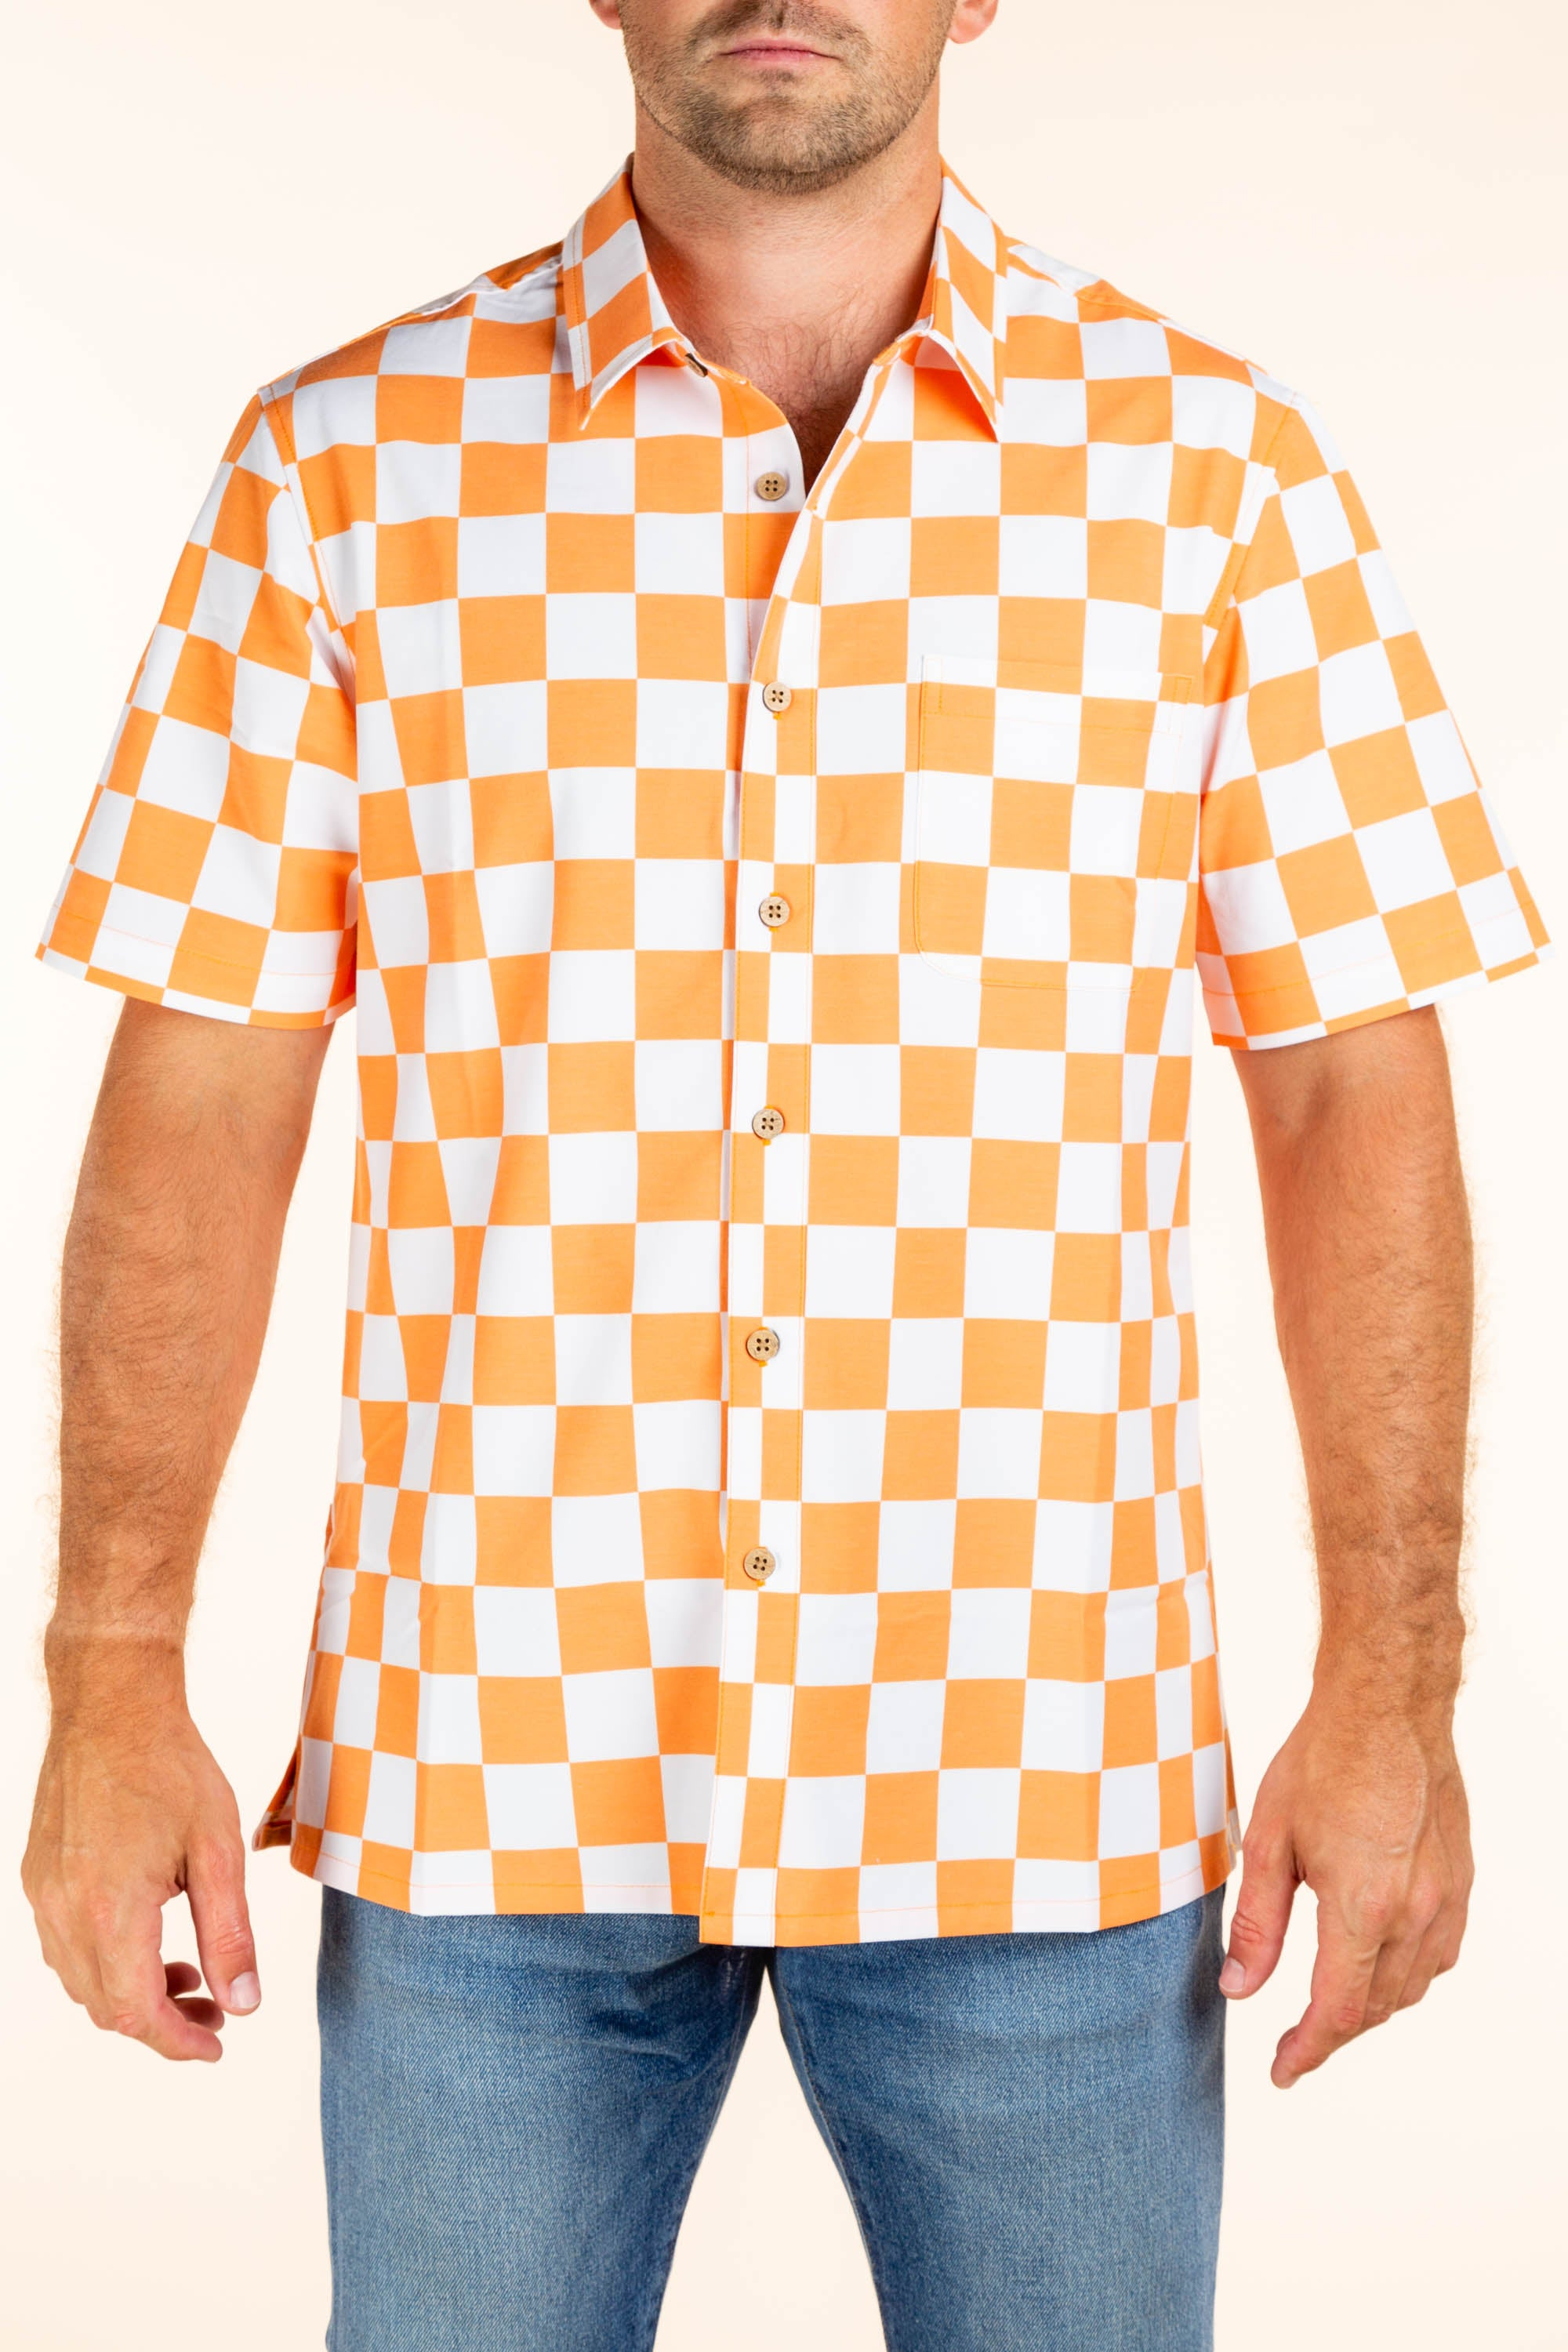 University of Tennessee Tailgating Shirt